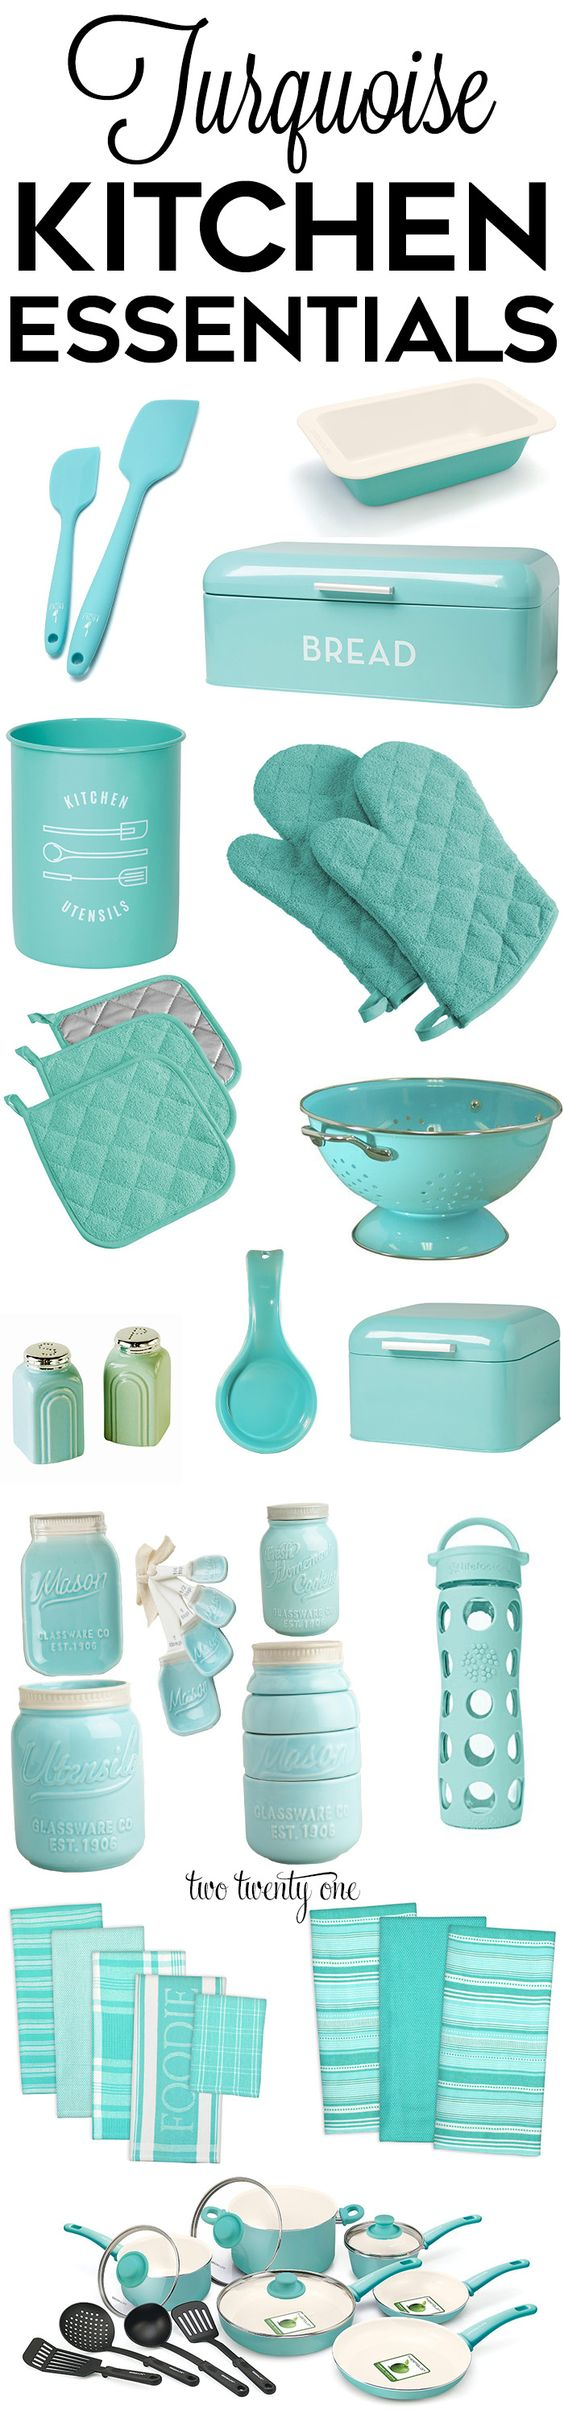 Looking for turquoise kitchen decor, appliances, and gadgets? Look no further! This is a comprehensive list of the best turquoise kitchen accessories!